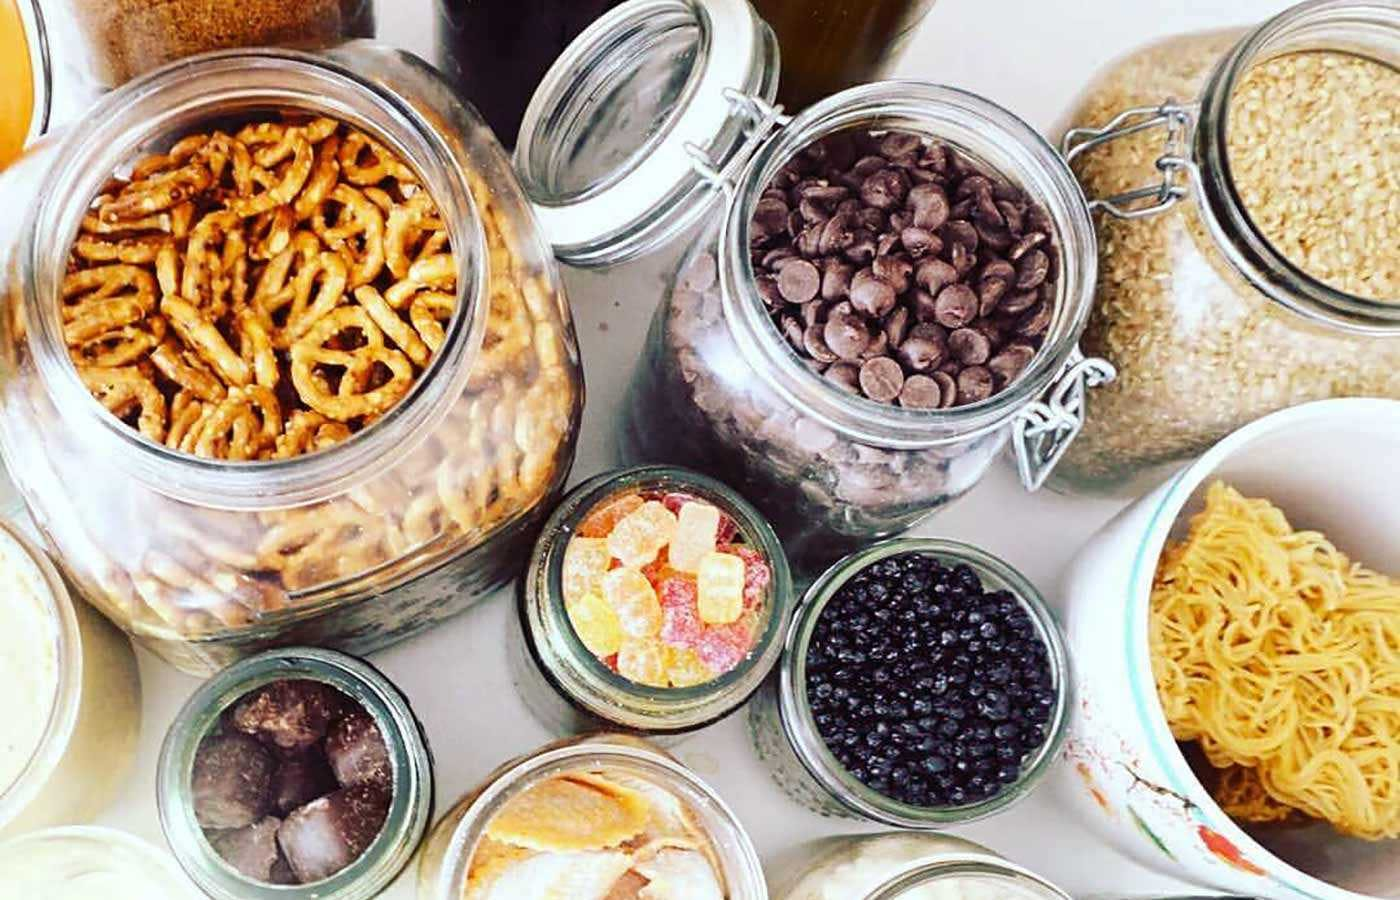 Snacks and candy in glass jars